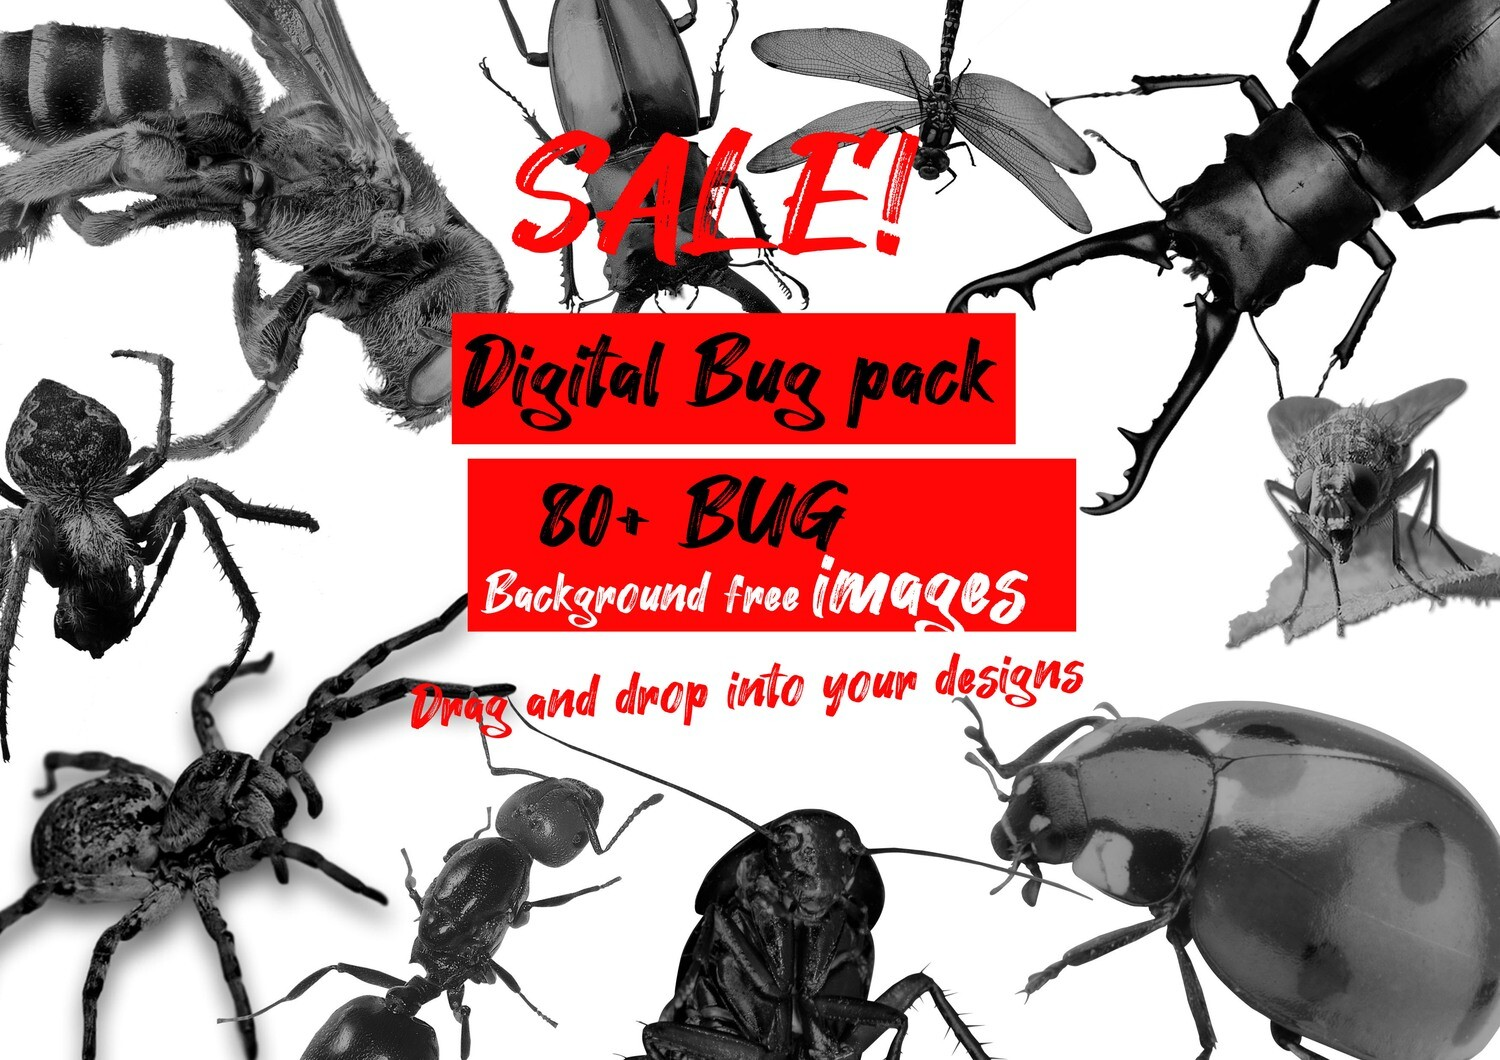 Digital Bug pack 80+ images